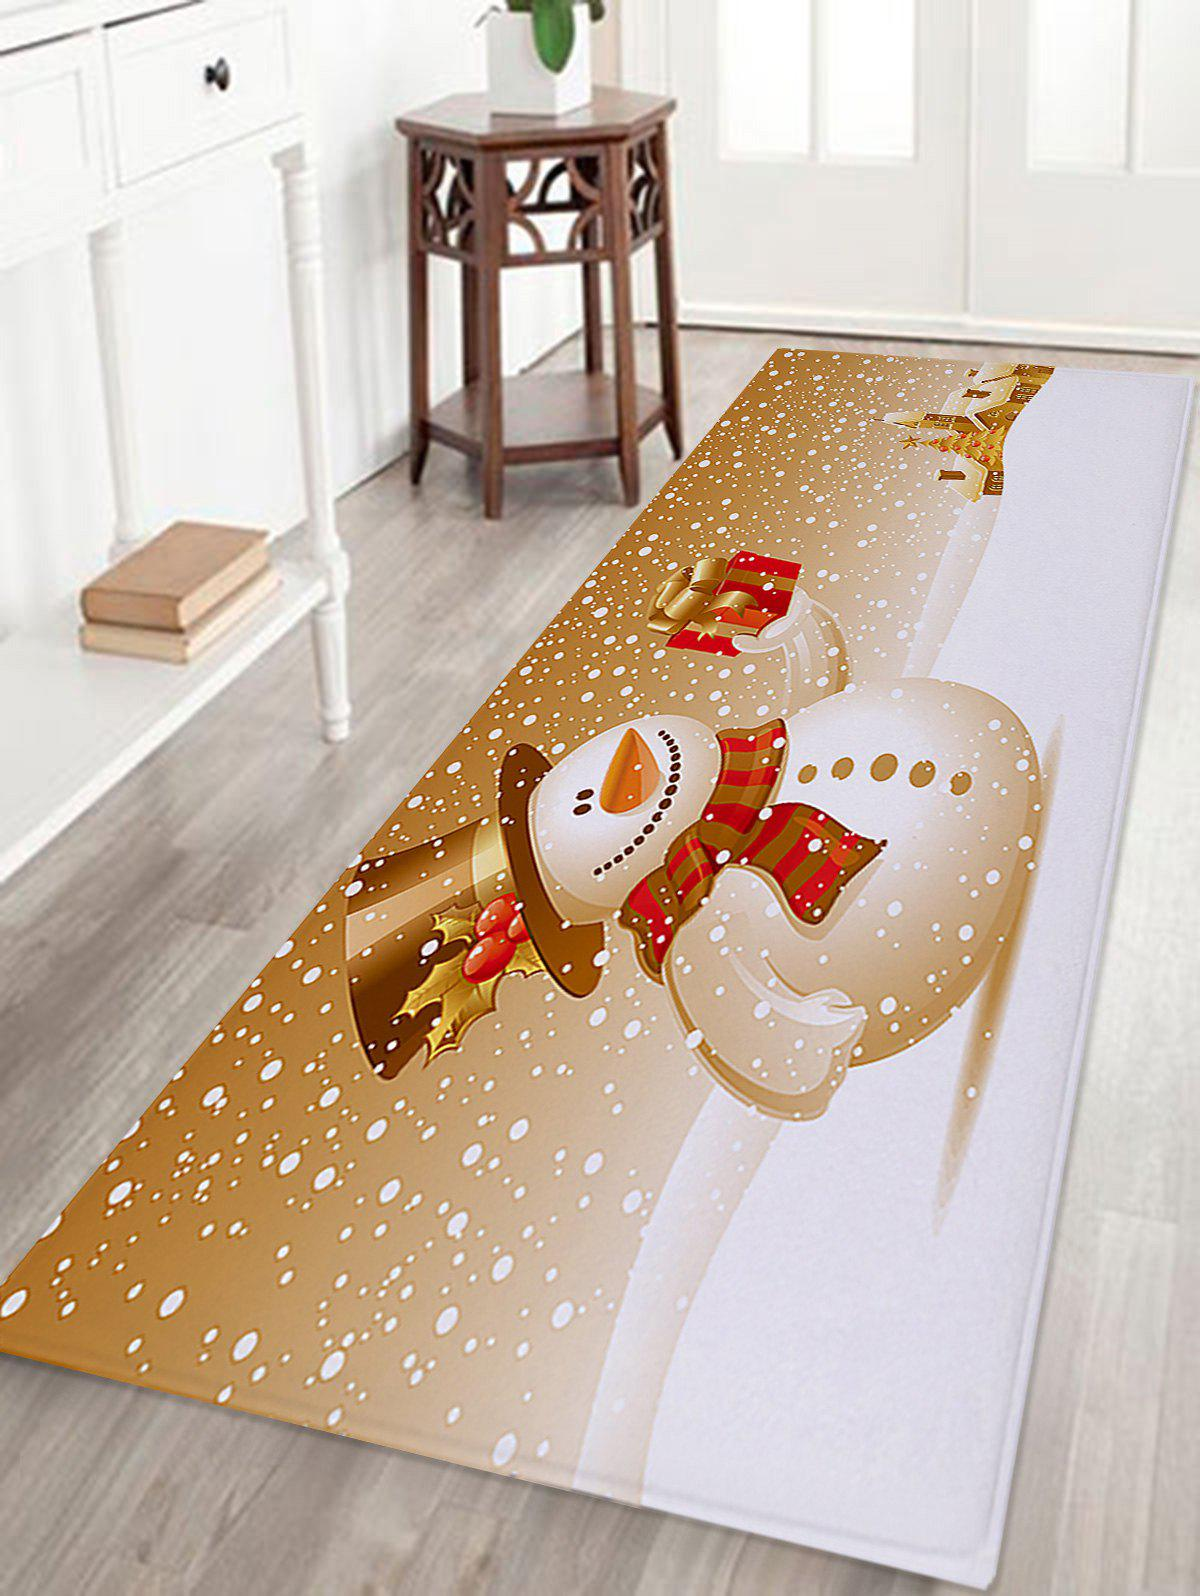 Christmas Snowman Print Coral Fleece Skidproof Bath MatHOME<br><br>Size: W24 INCH * L71 INCH; Color: COLORMIX; Products Type: Bath rugs; Materials: Coral FLeece; Pattern: Gift,Snowman; Style: Festival; Shape: Rectangular; Package Contents: 1 x Rug;